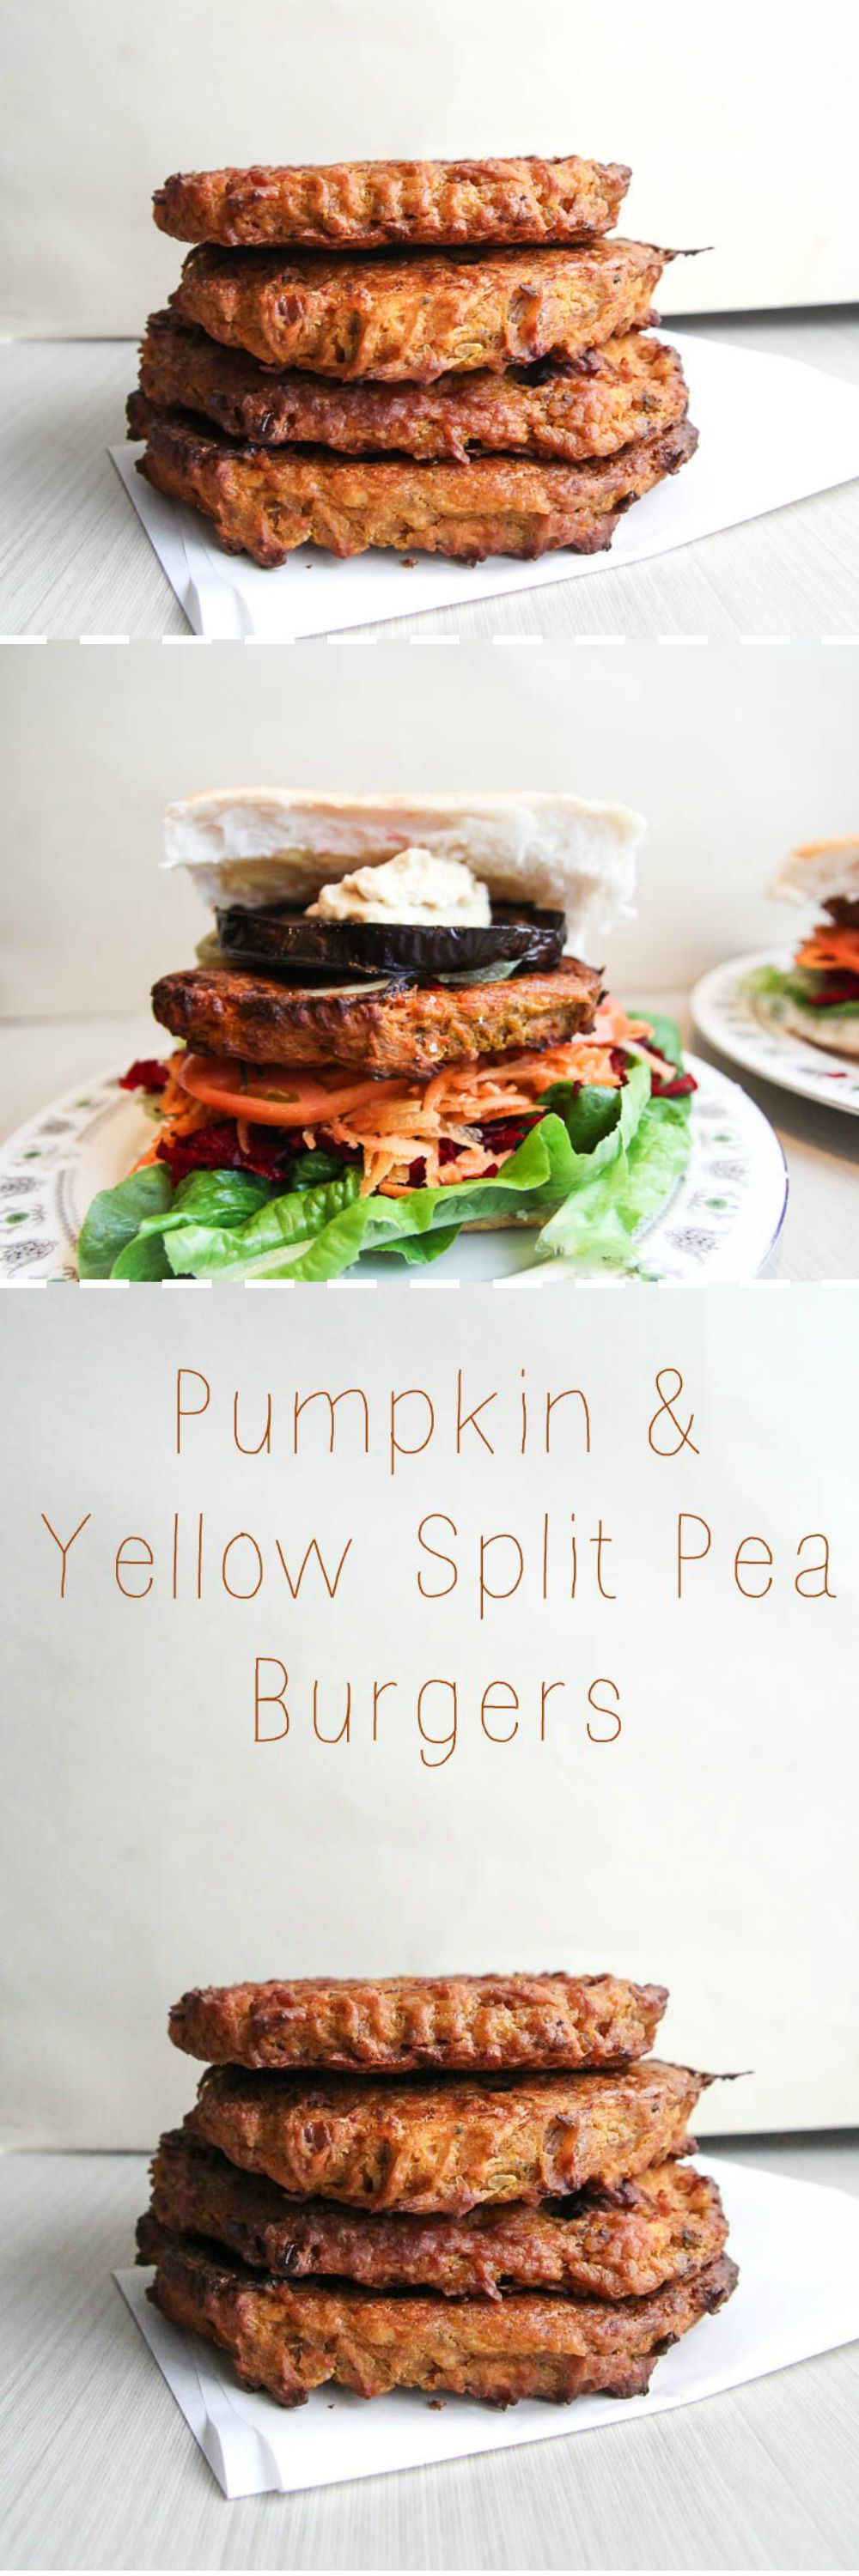 Roasted Pumpkin Yellow Split Pea Burgers